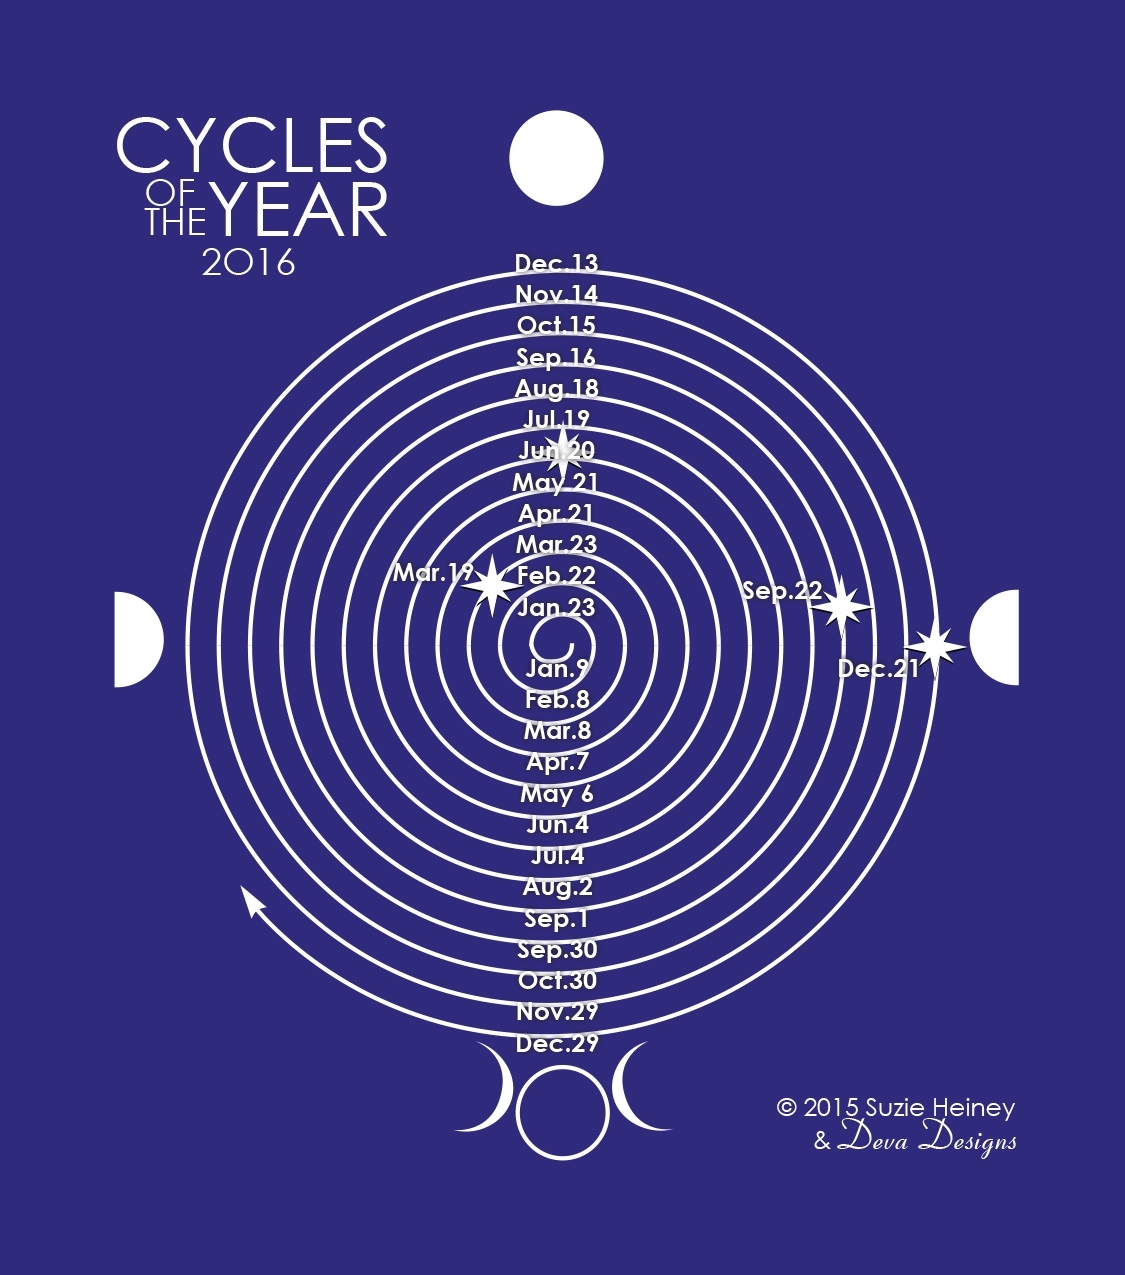 Cycles Of The Year 2019 - Deva Designs - Joyful Gifts And Jewelry To pertaining to Desktop Calendar With Lunar Cycle